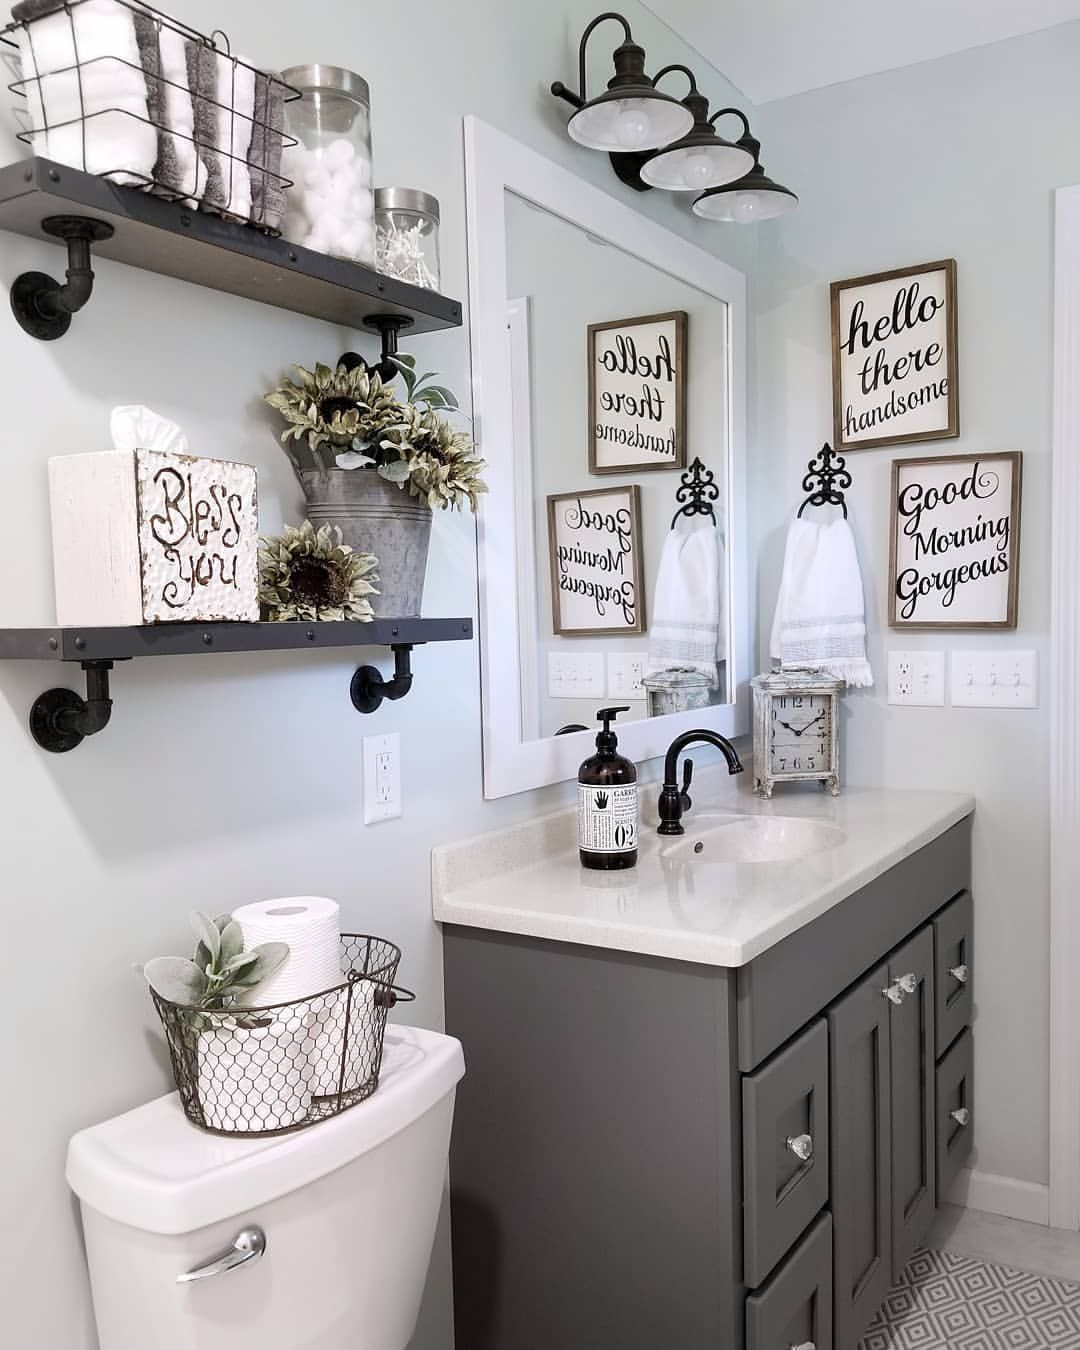 These mirror ideas will surely be useful in making your bathroom